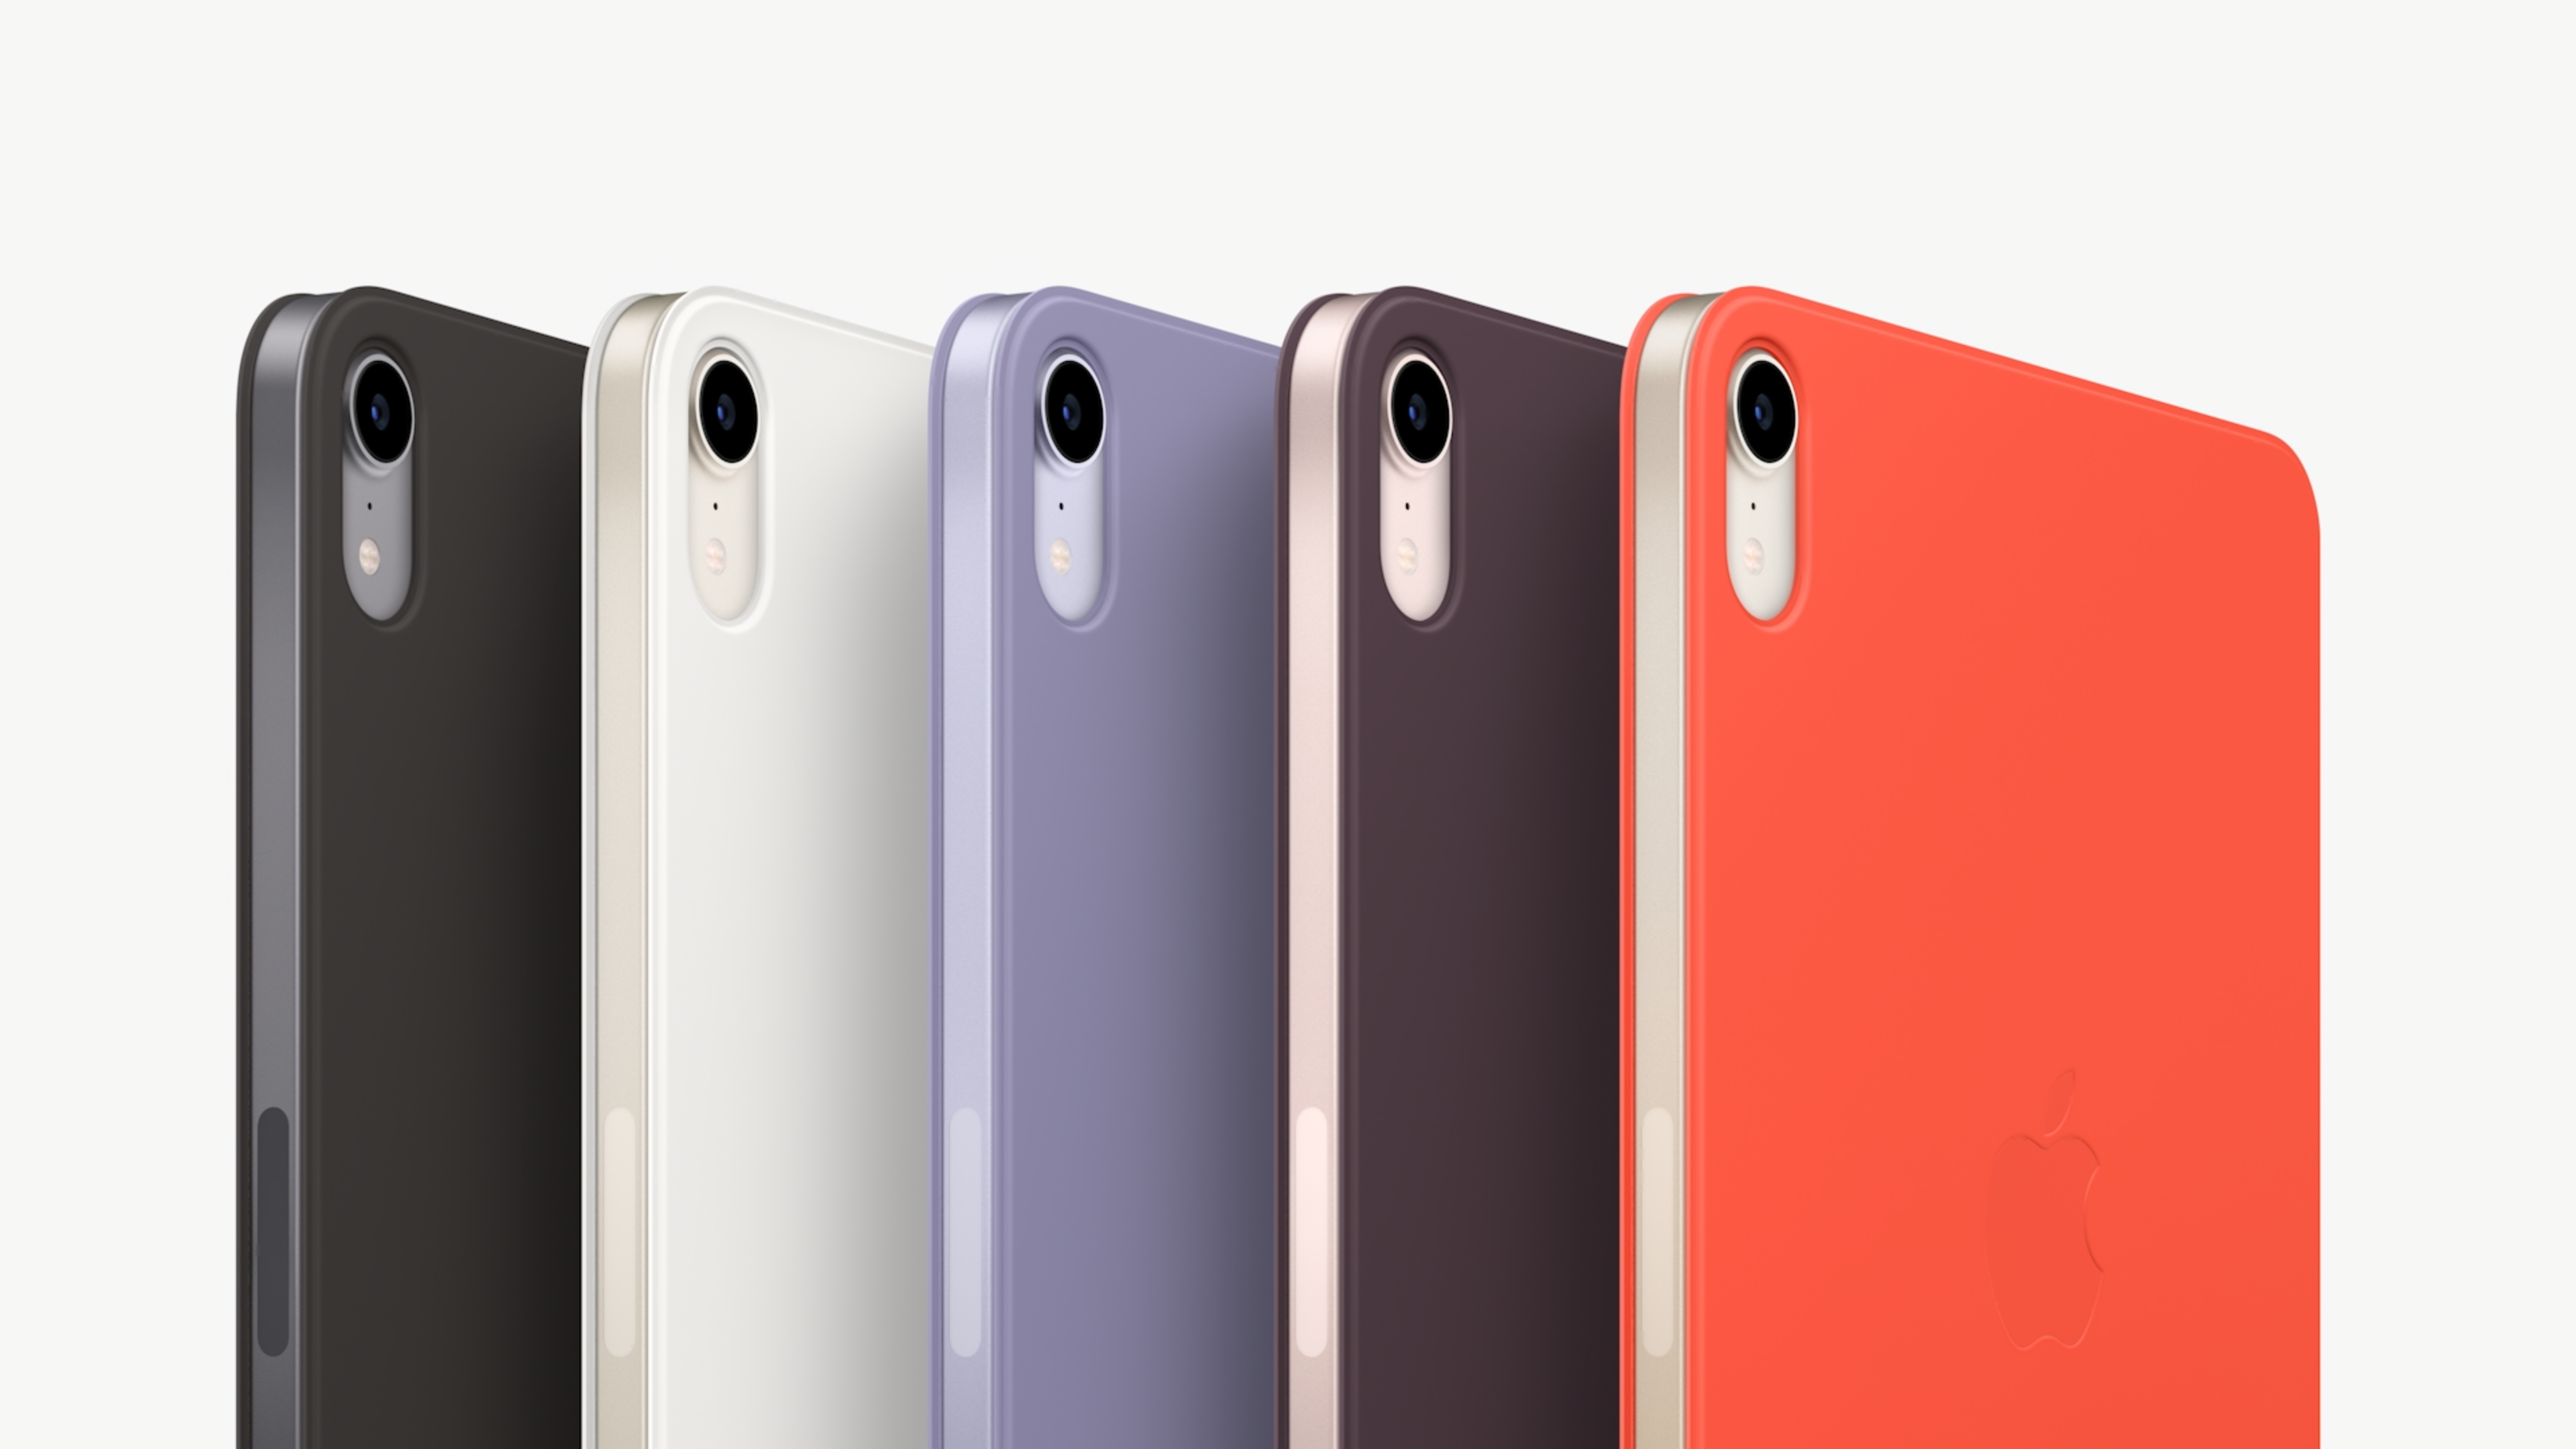 Apple event recap: iPhone 13 lineup and everything else announced today - CNET